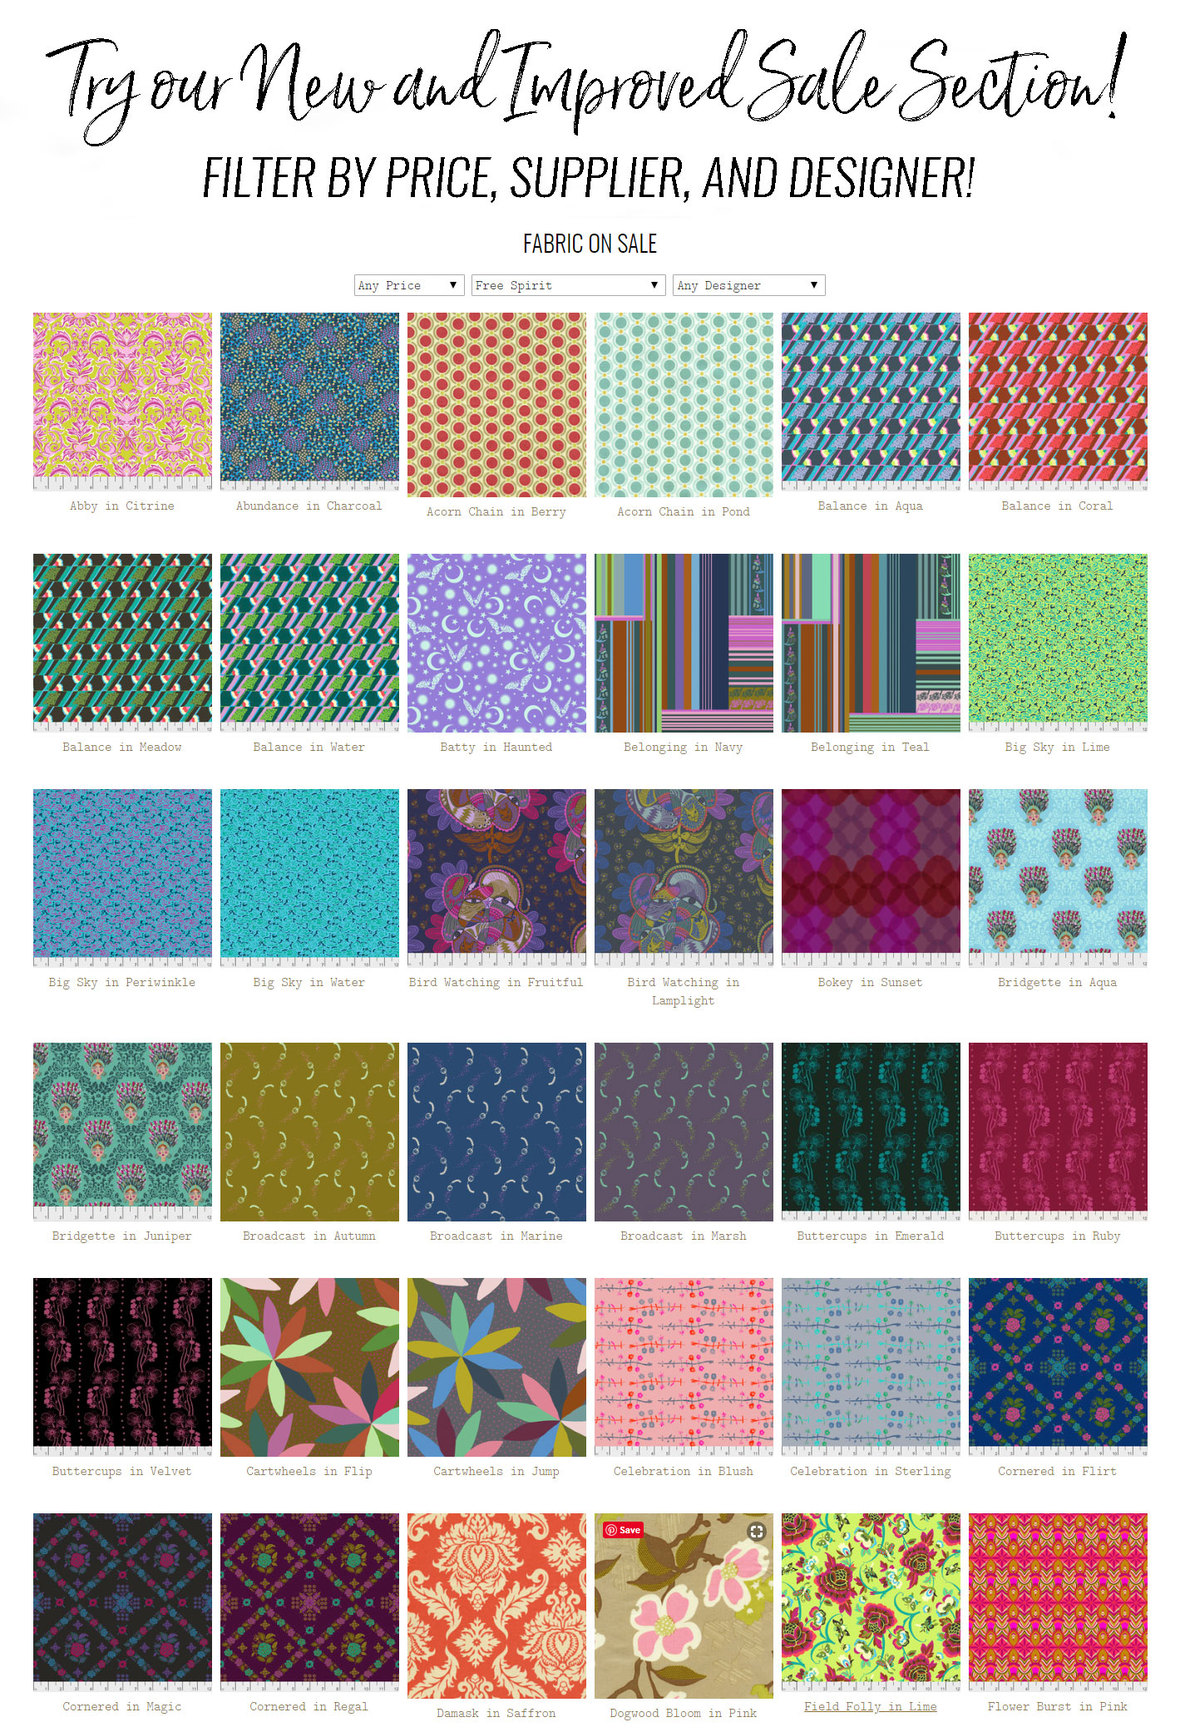 HAWTHORNE-SUPPLY-CO-FABRIC-ON-SALE-SECTION